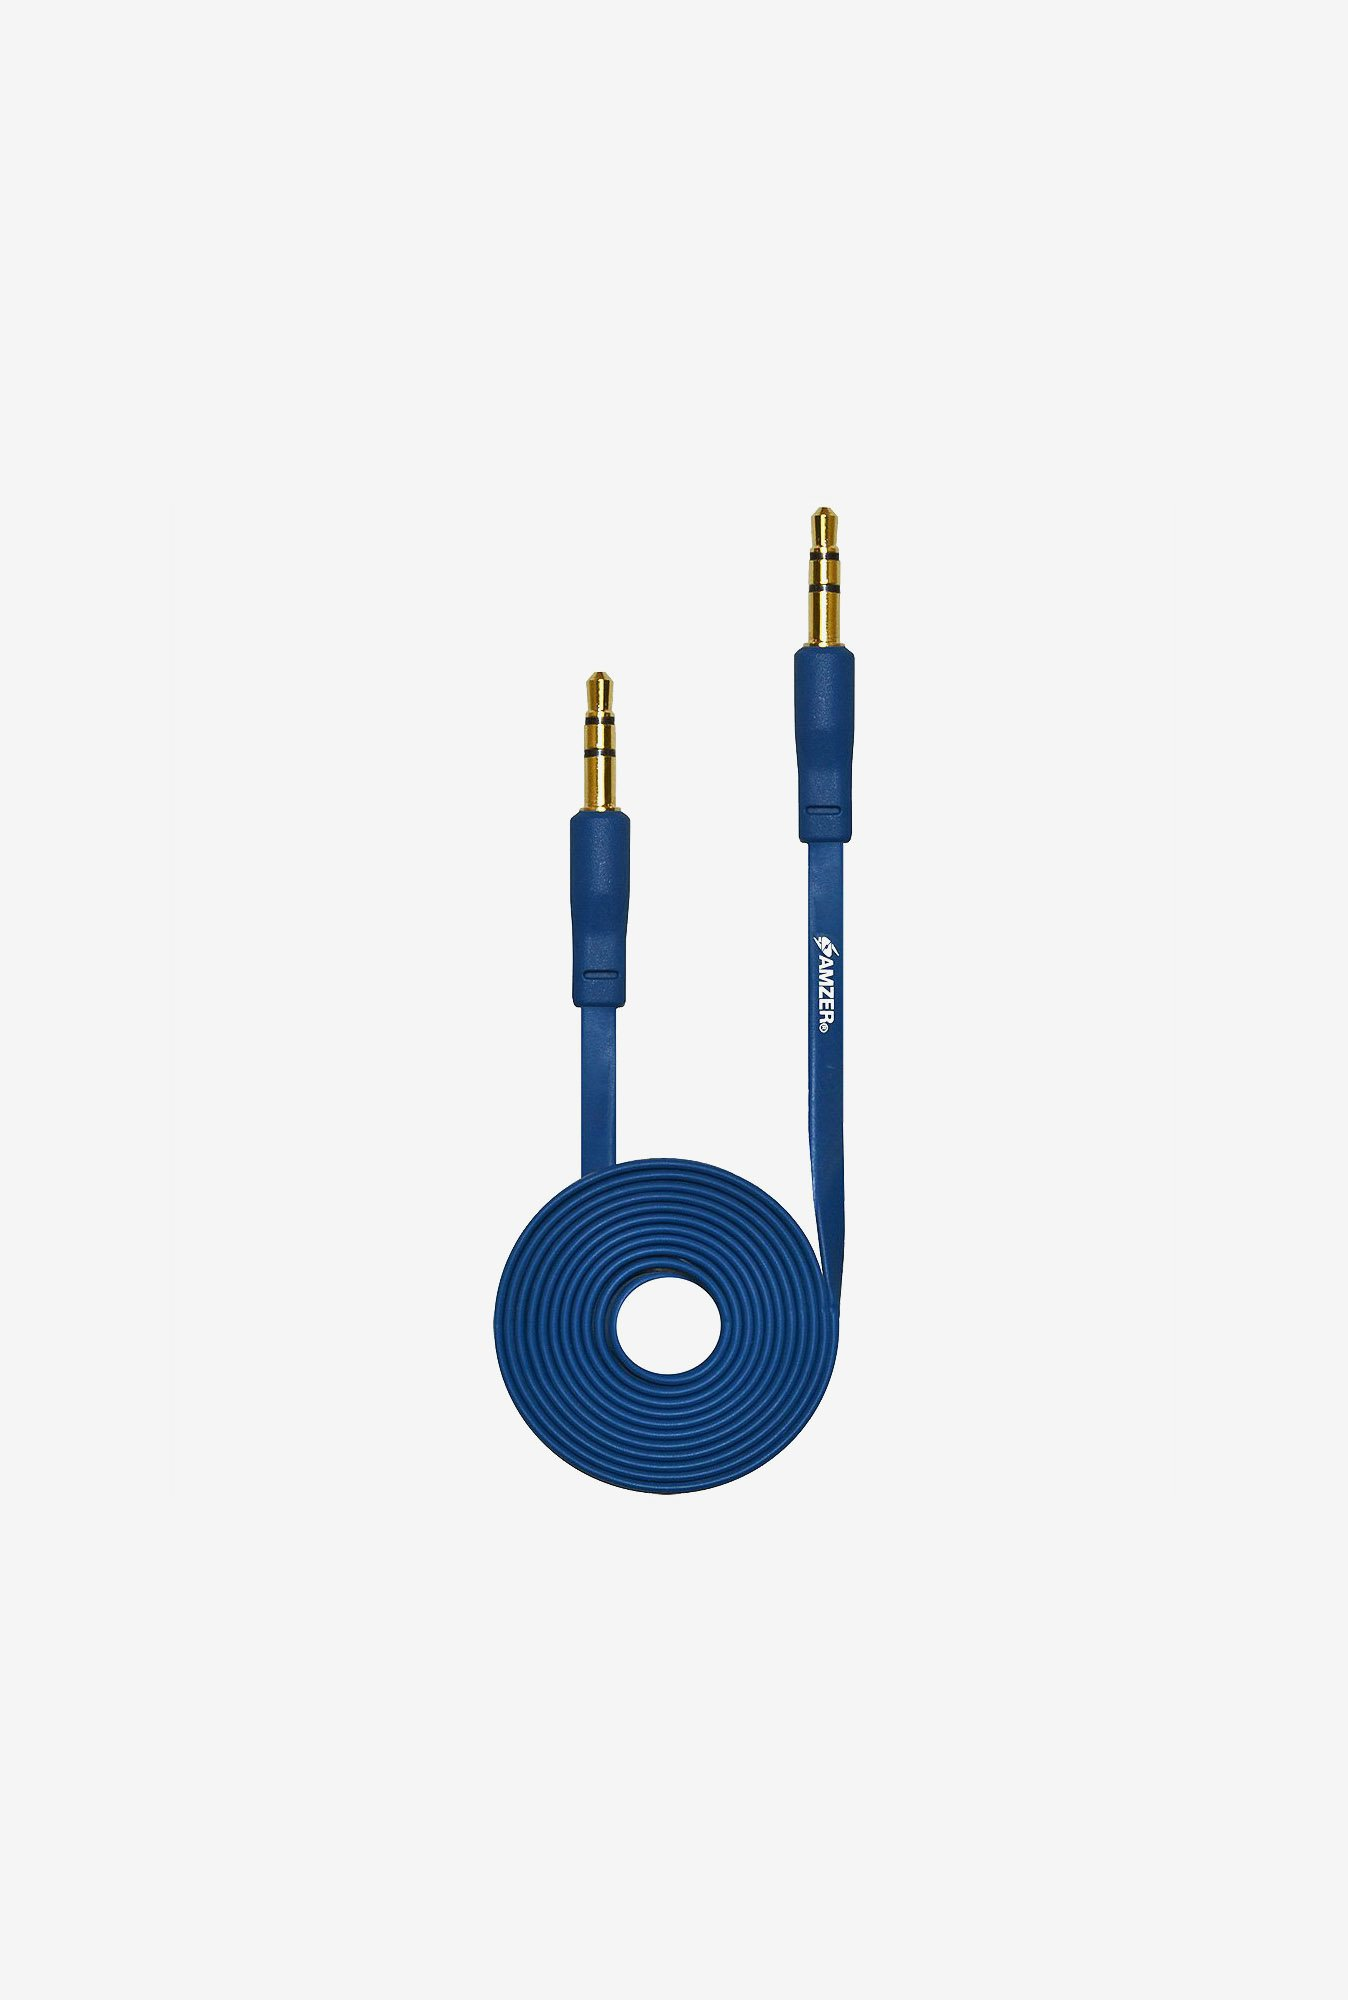 Amzer 3.5mm Auxiliary Audio Cable (3ft.) Blue